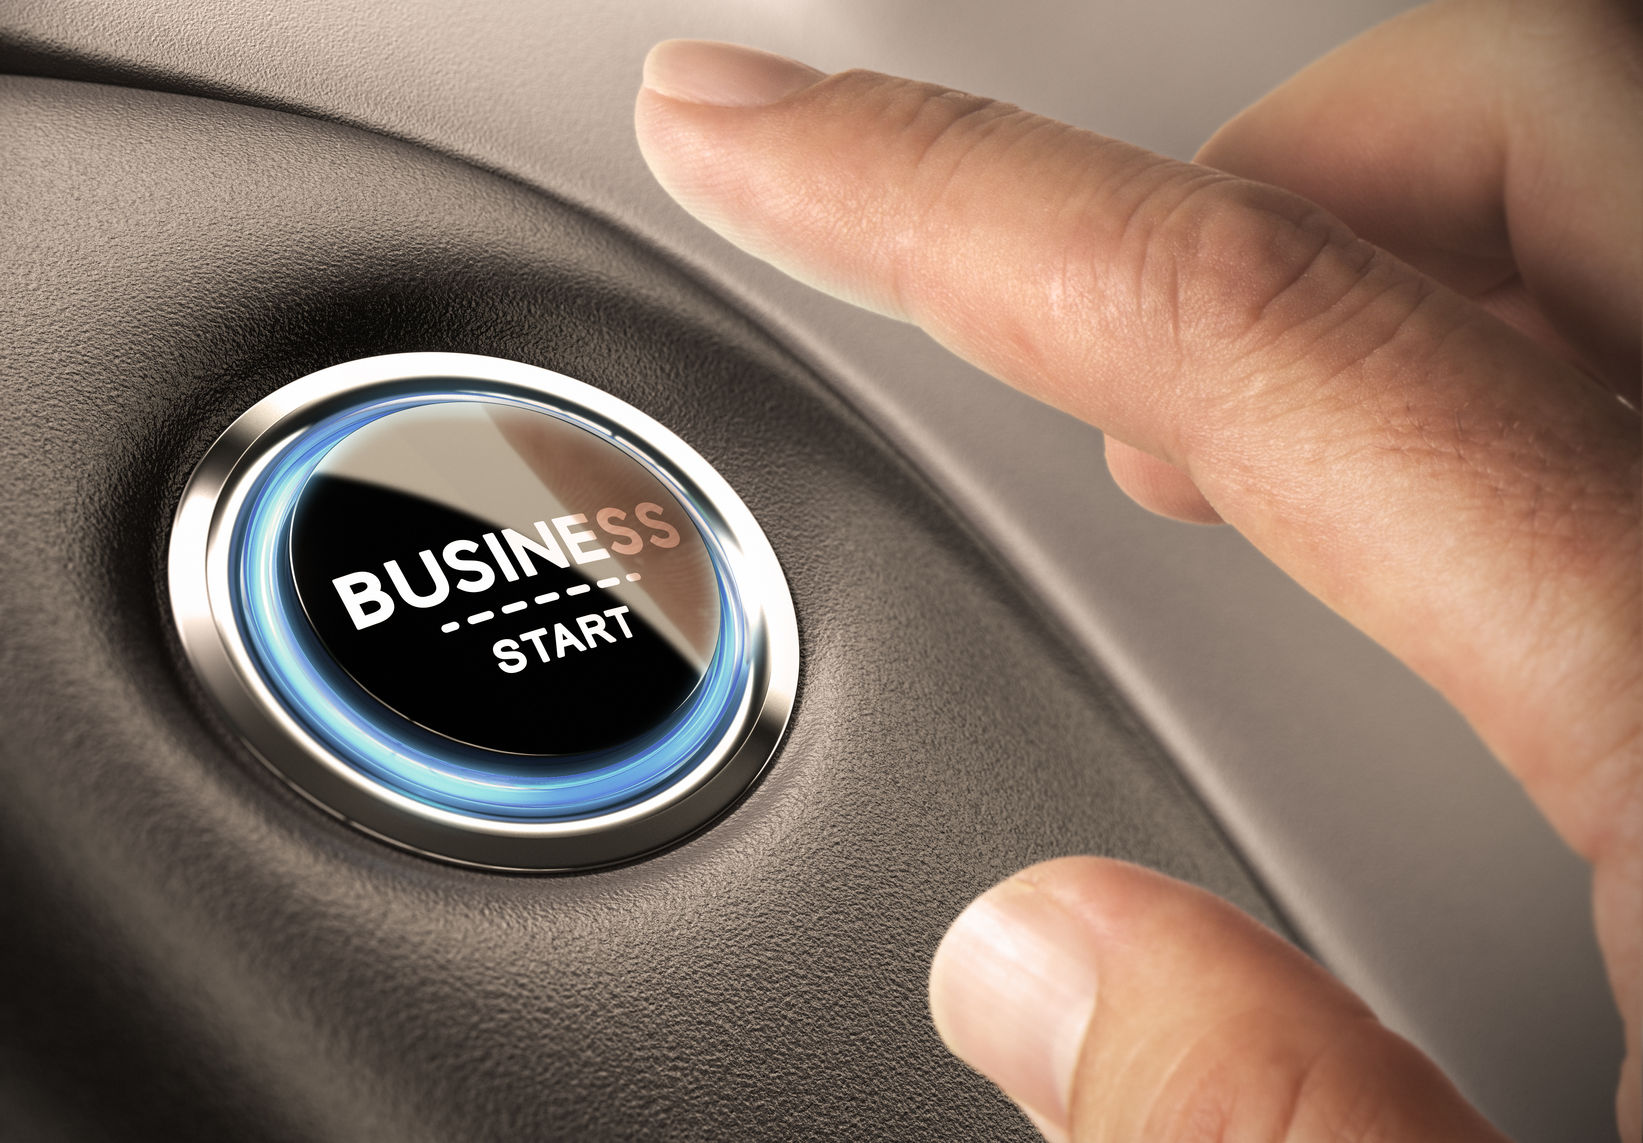 40915477 - finger pressing business button. blue and black tones. start up concept.